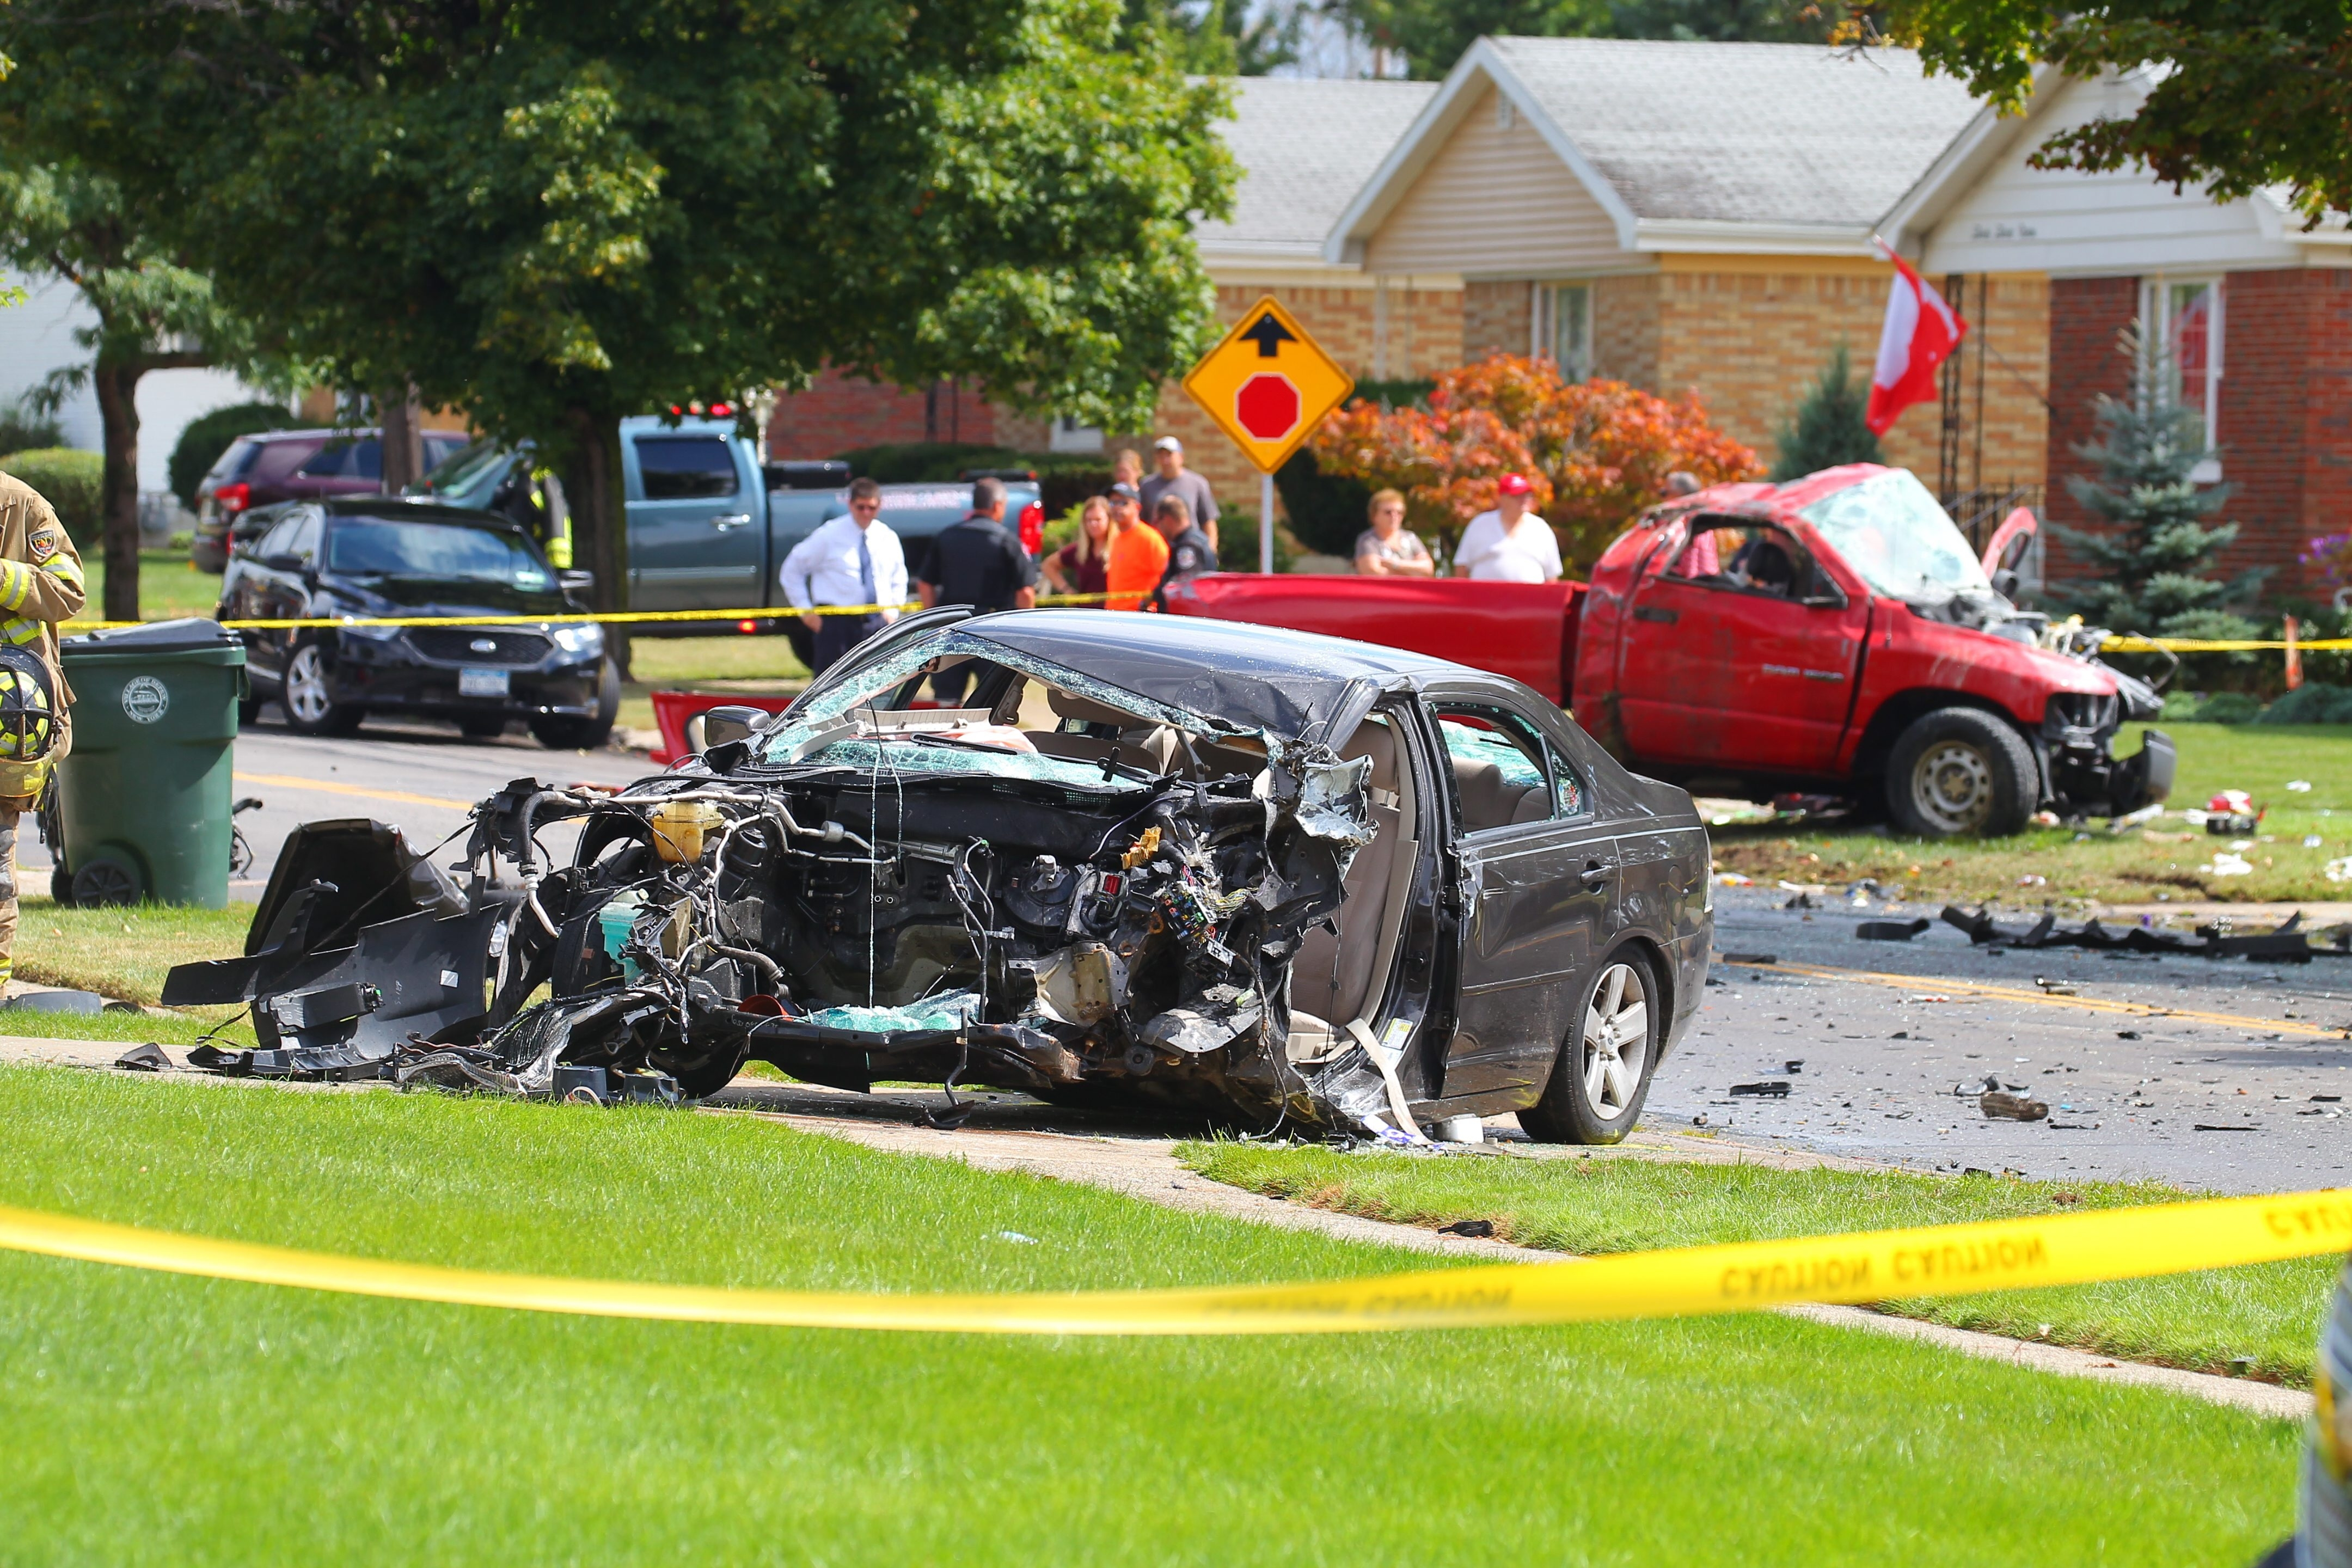 The wreckage of a sedan sits on a lawn after it collided with a pickup truck in Depew Wednesday.